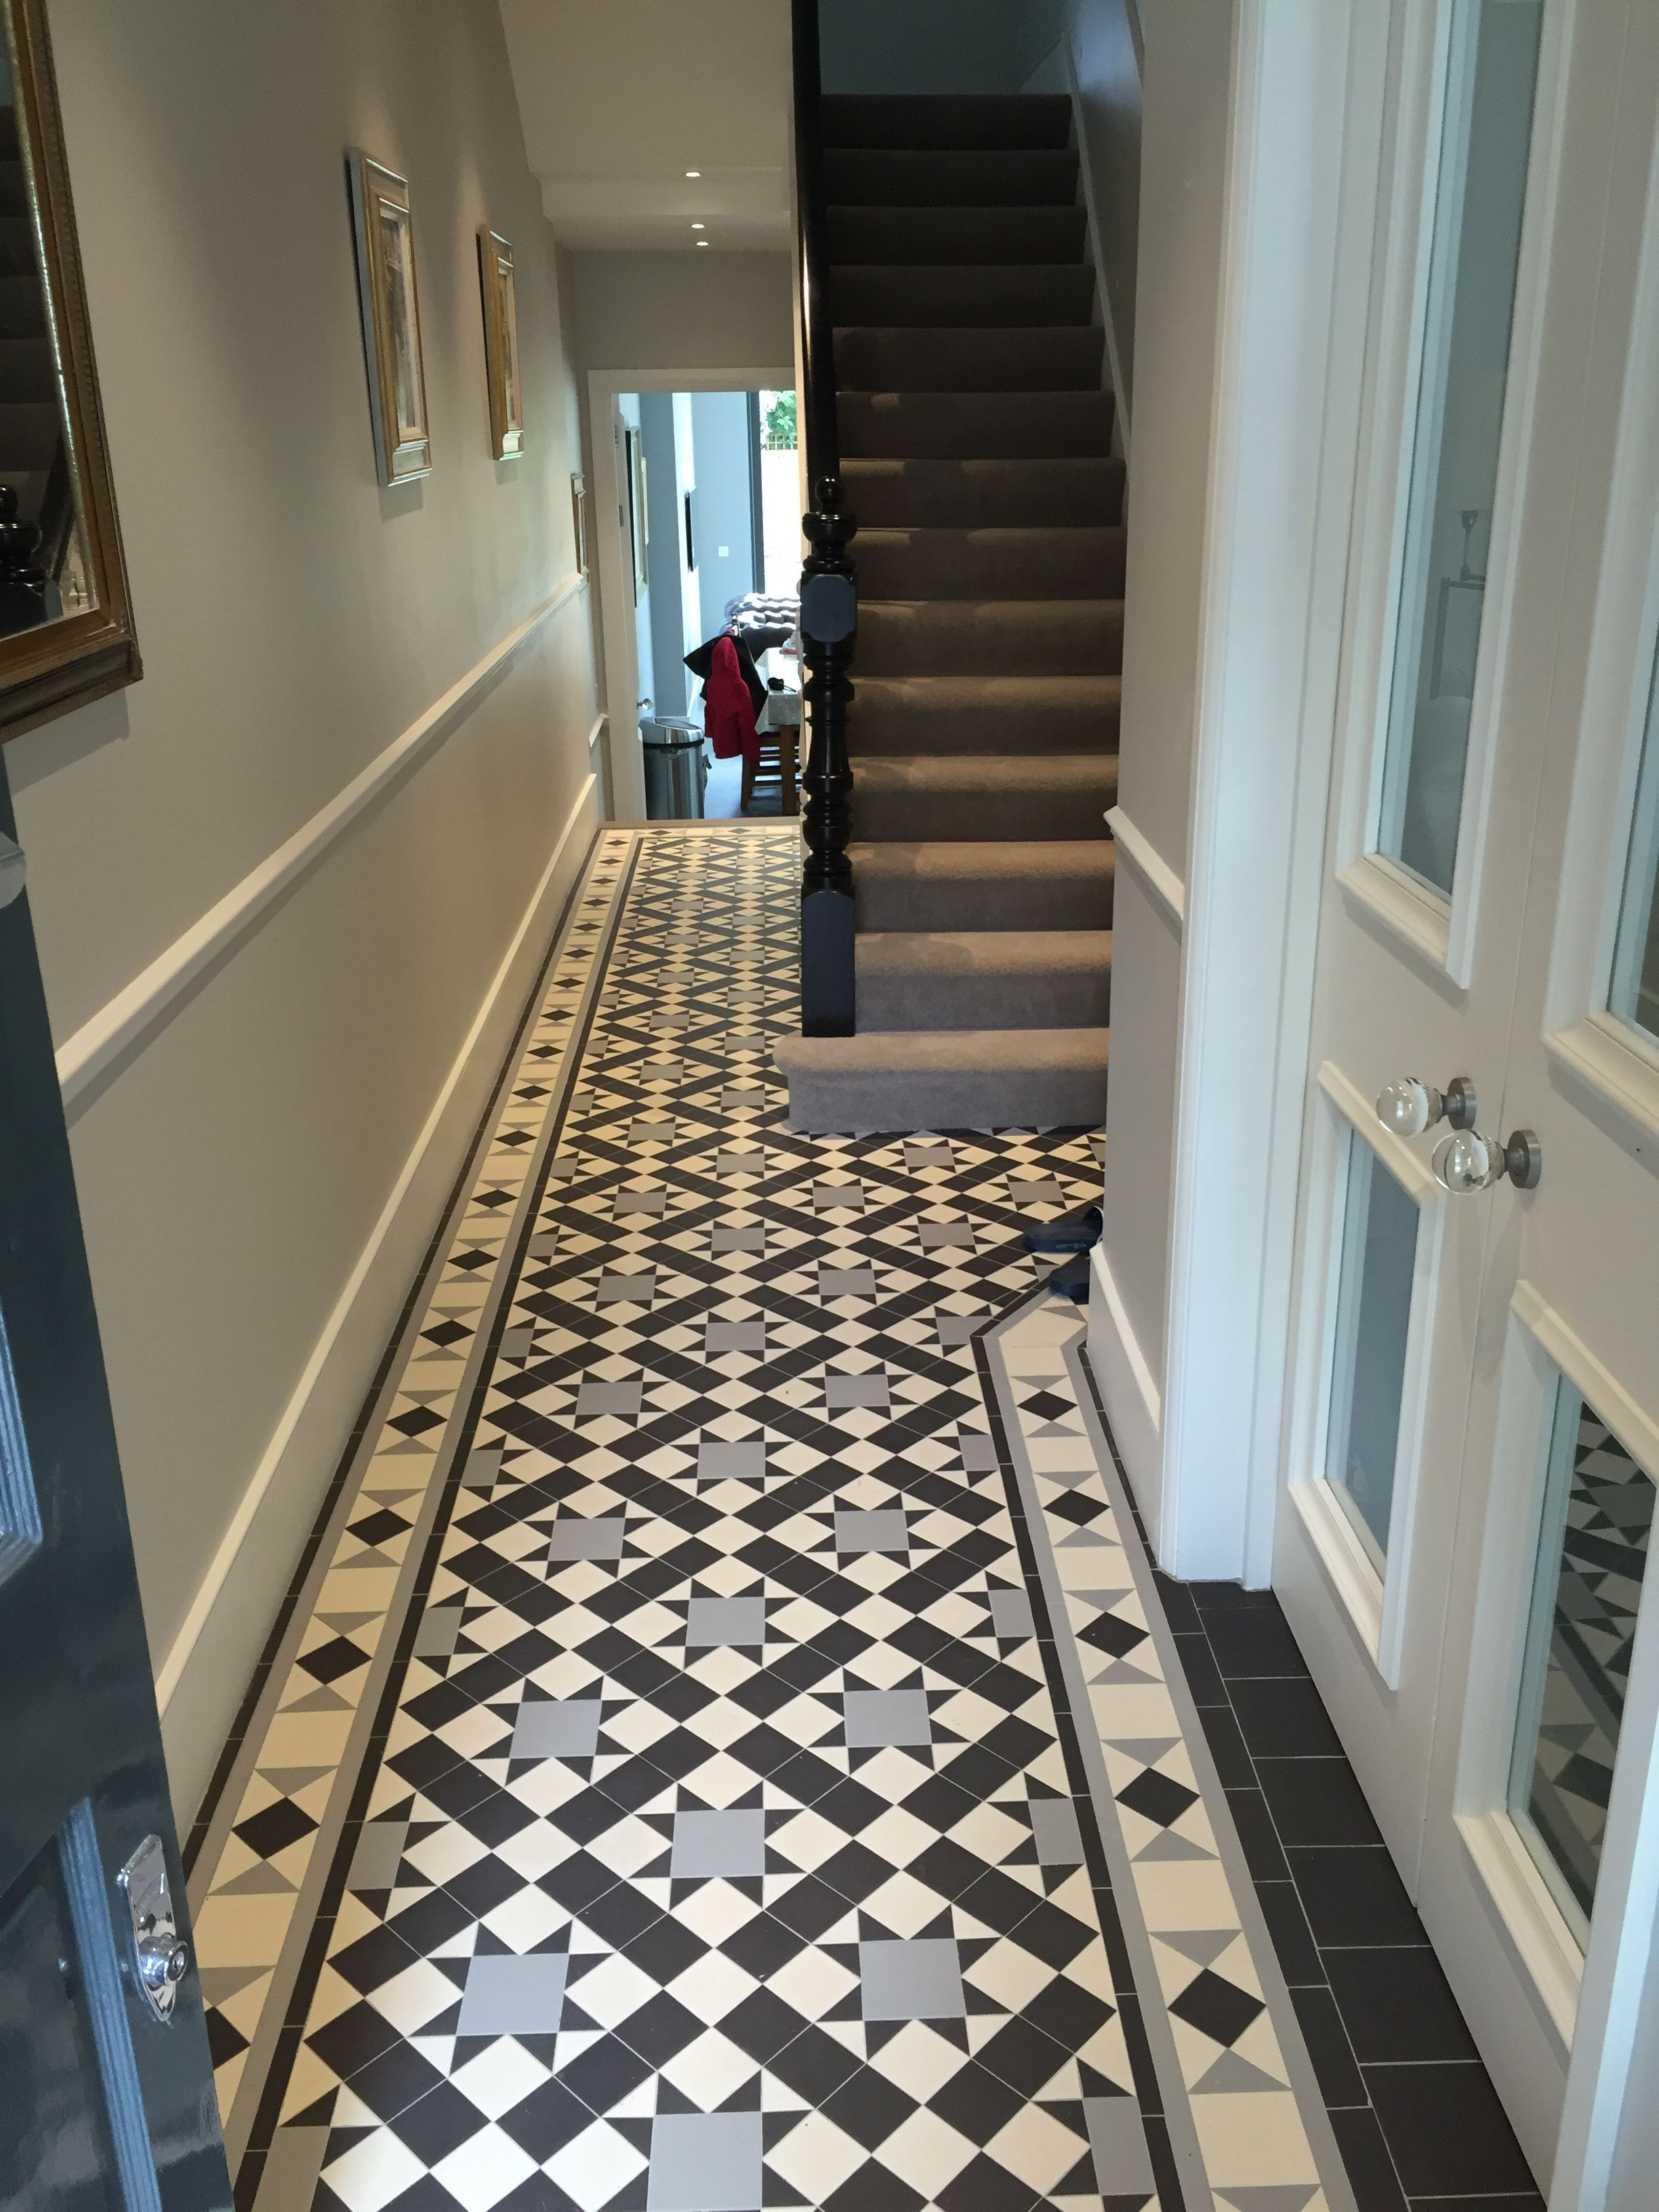 1930s hallway decorating ideas This is modified Blenheim pattern Simply stunning  Ideas for the